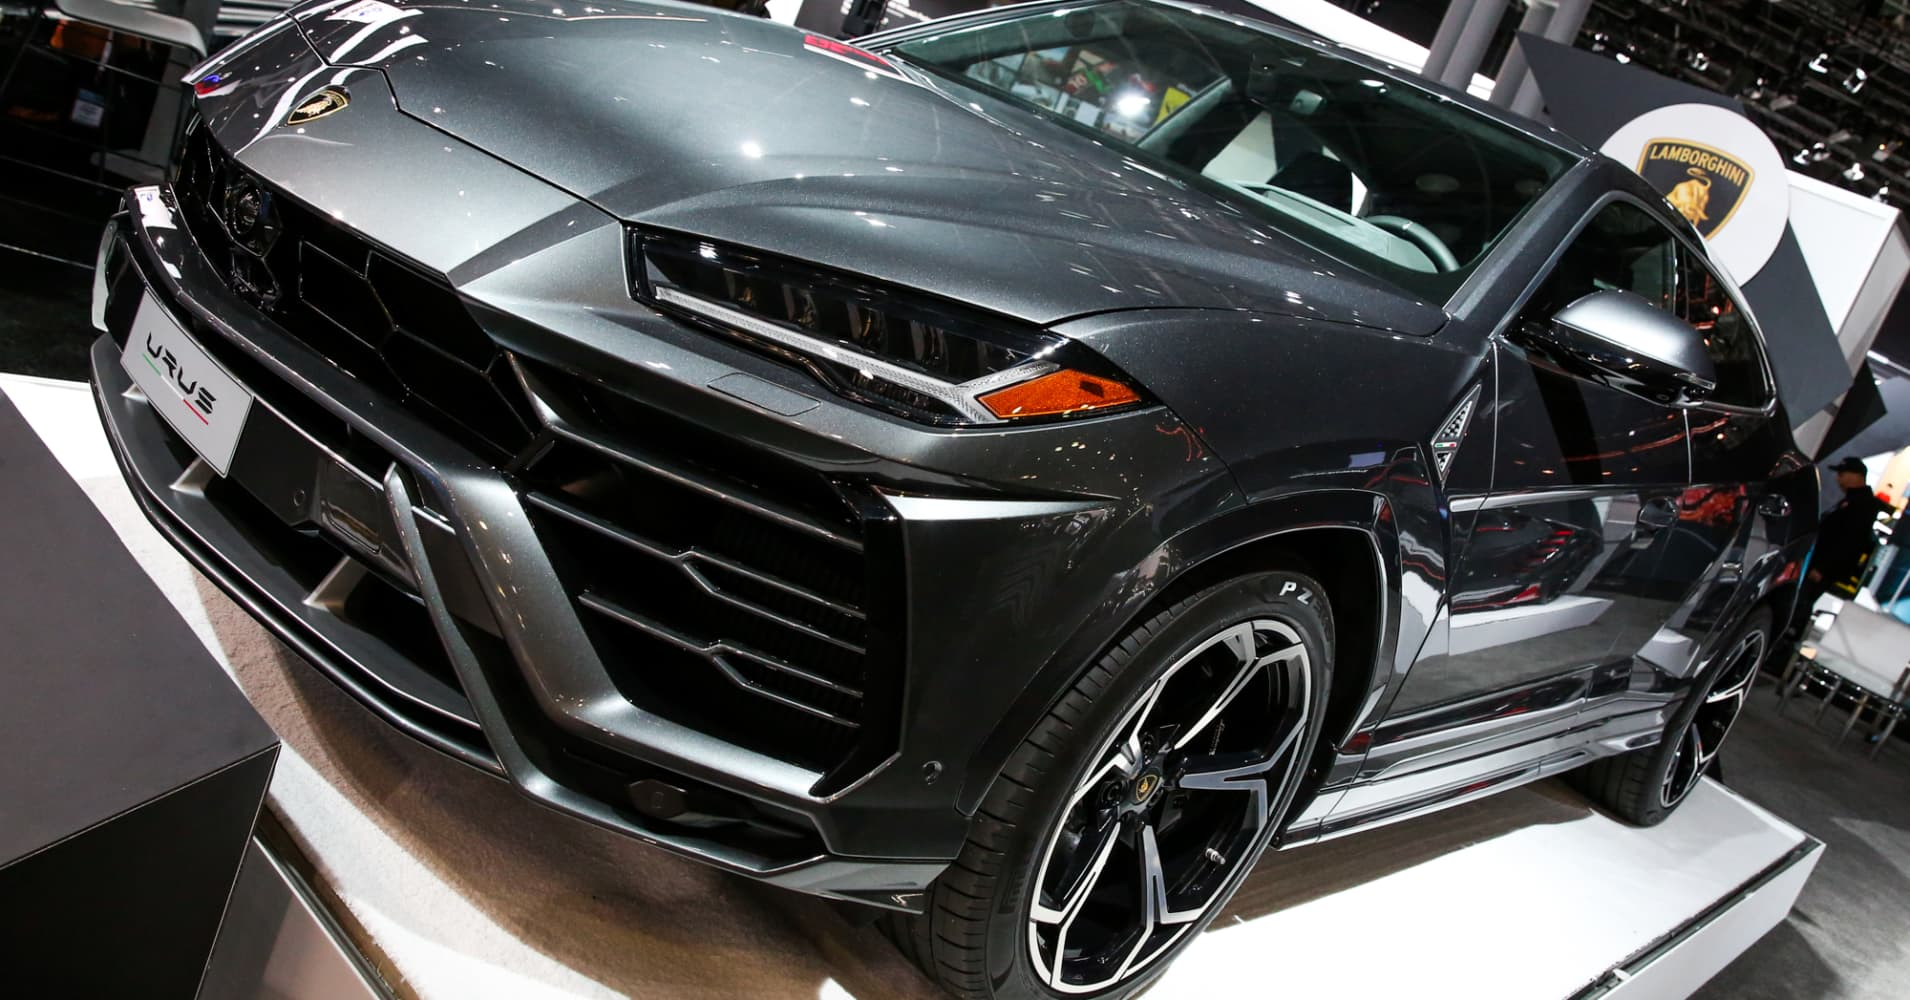 Lamborghini S New 200 000 Suv Is More Popular Than Expected